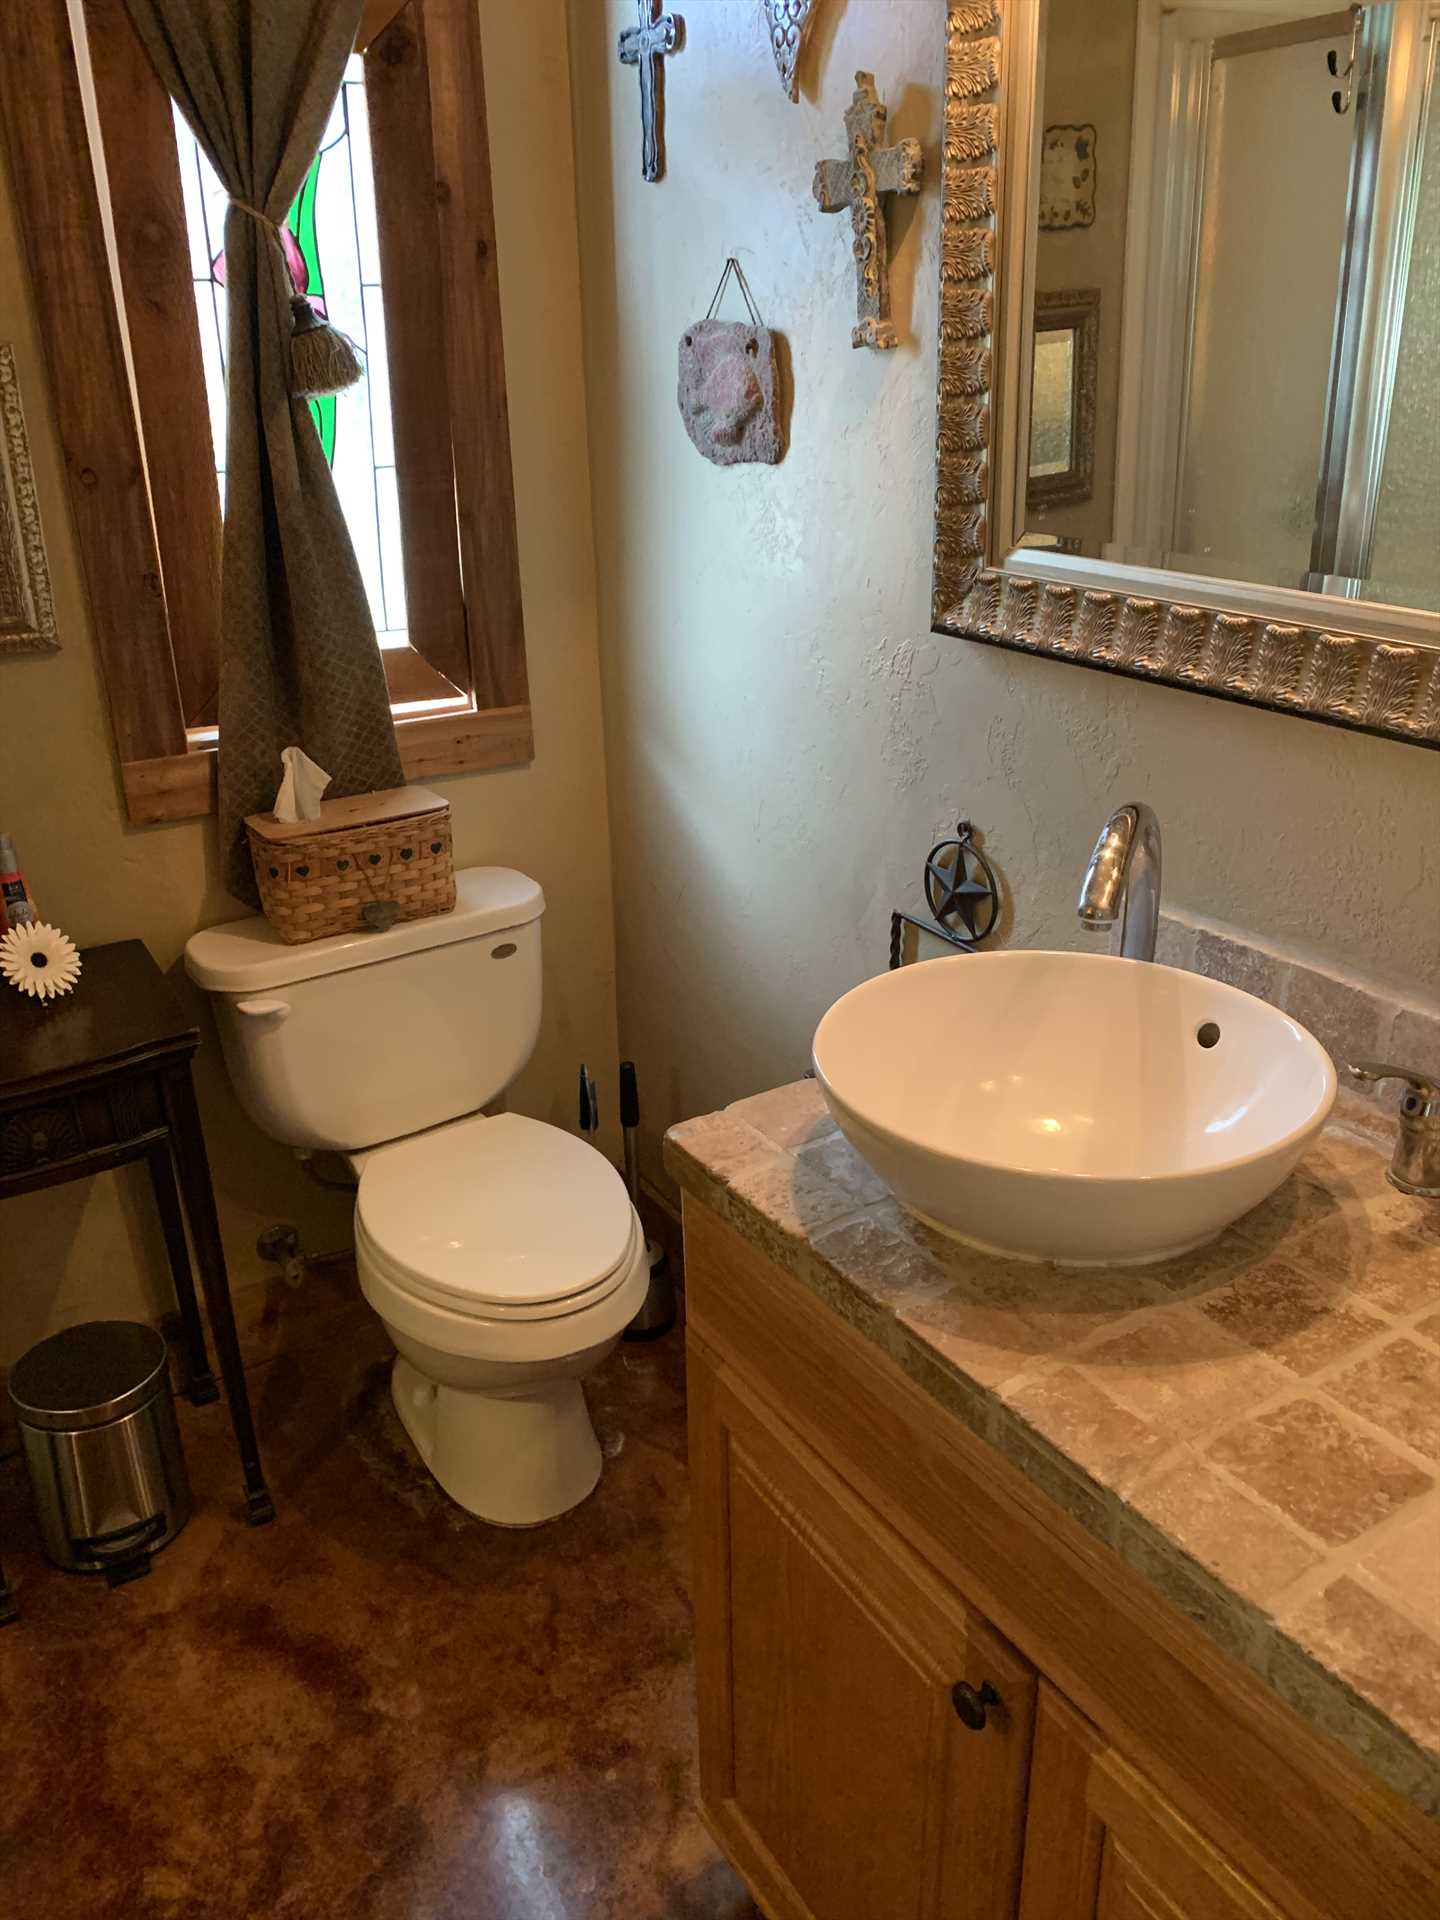 Check out the unique bowl-style vanity! All bed and bath linens are included as part of your stay at the Casita.